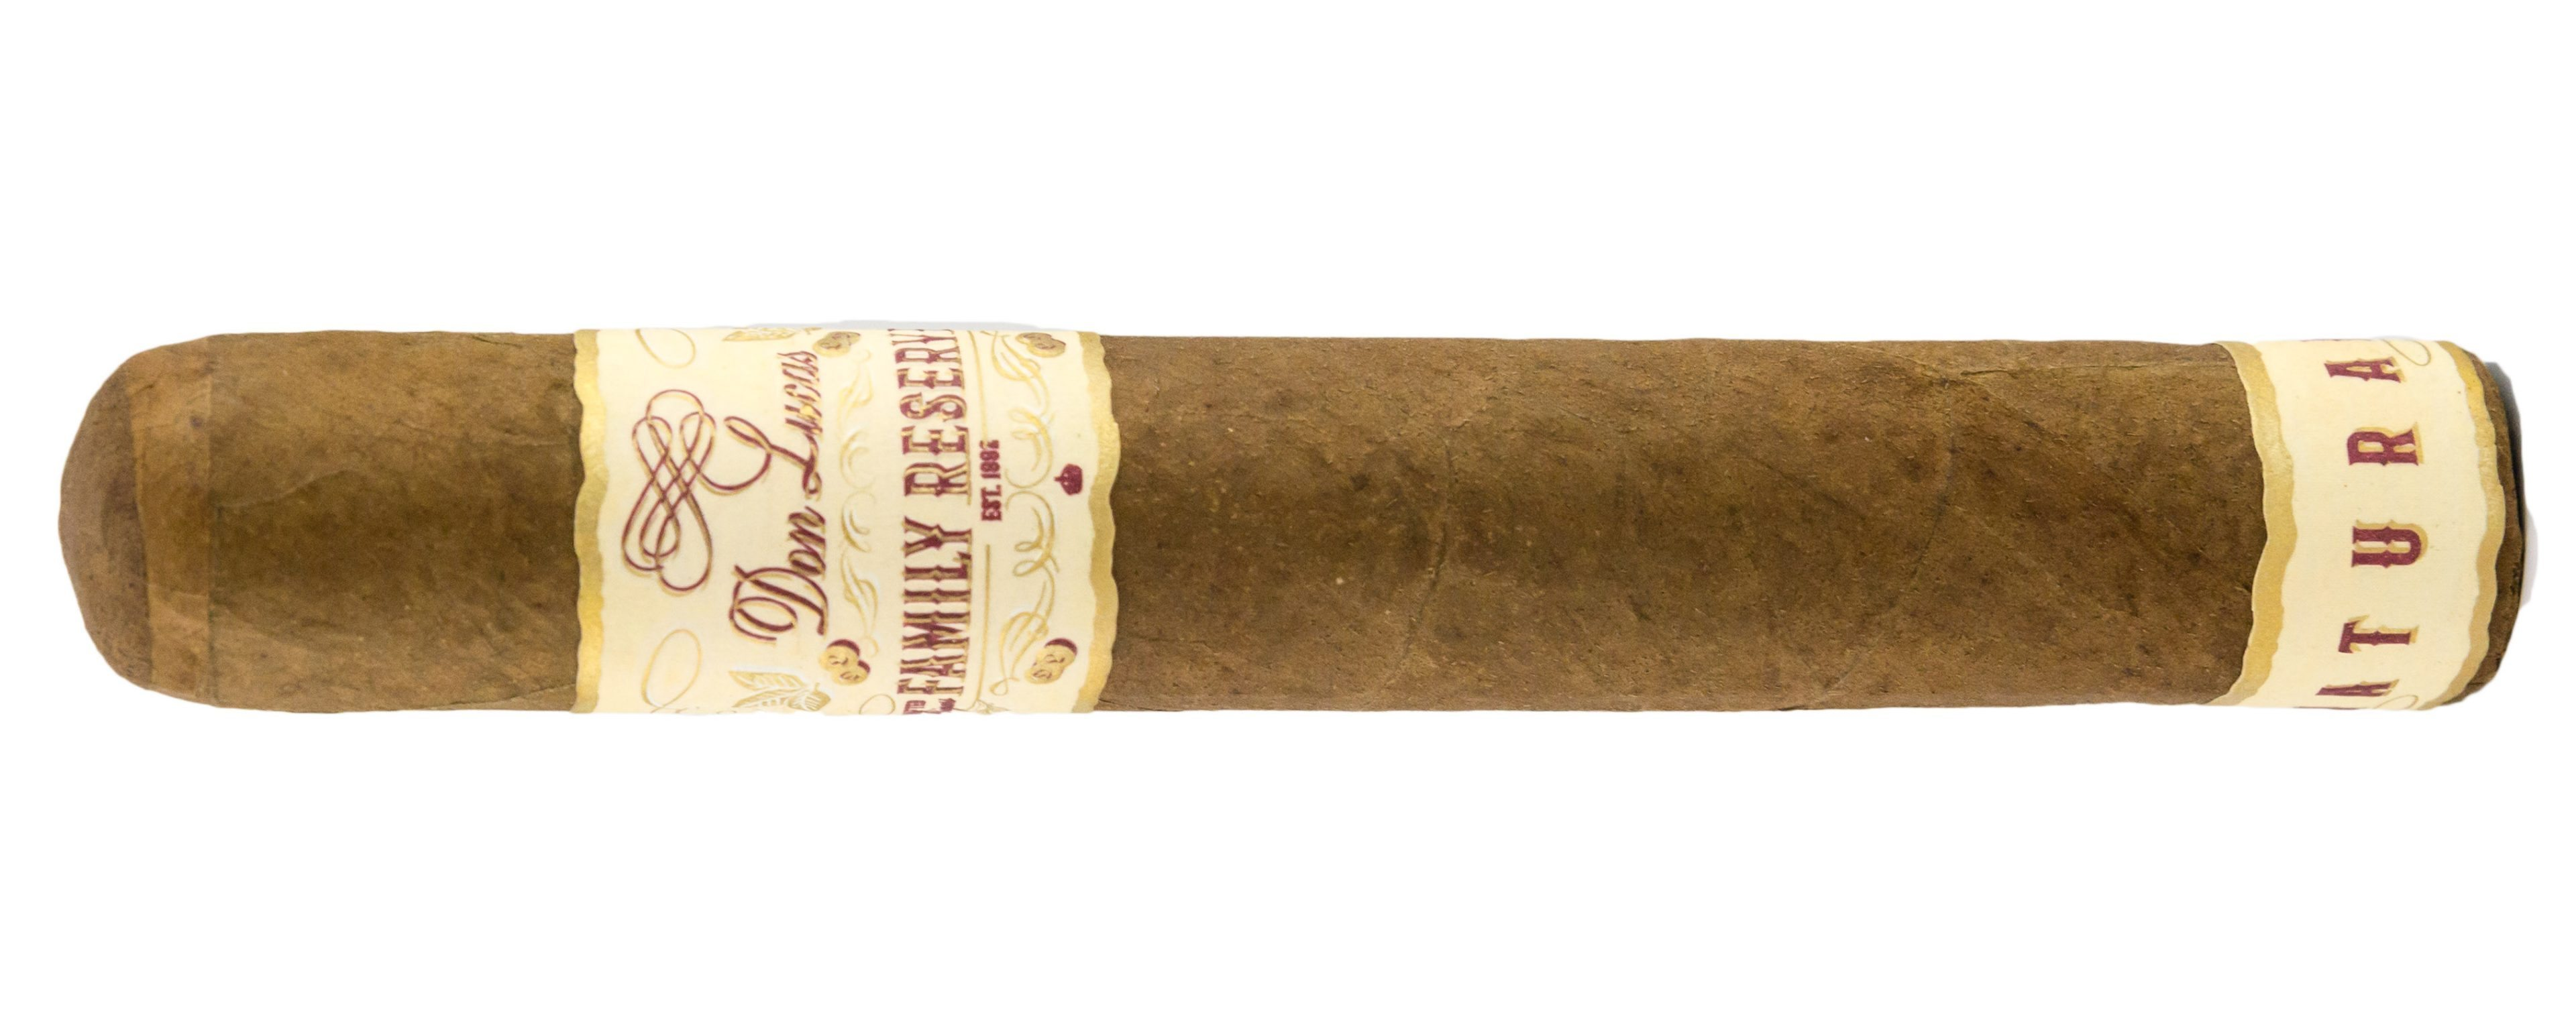 Blind Cigar Review: Don Lucas | Family Reserve Natural